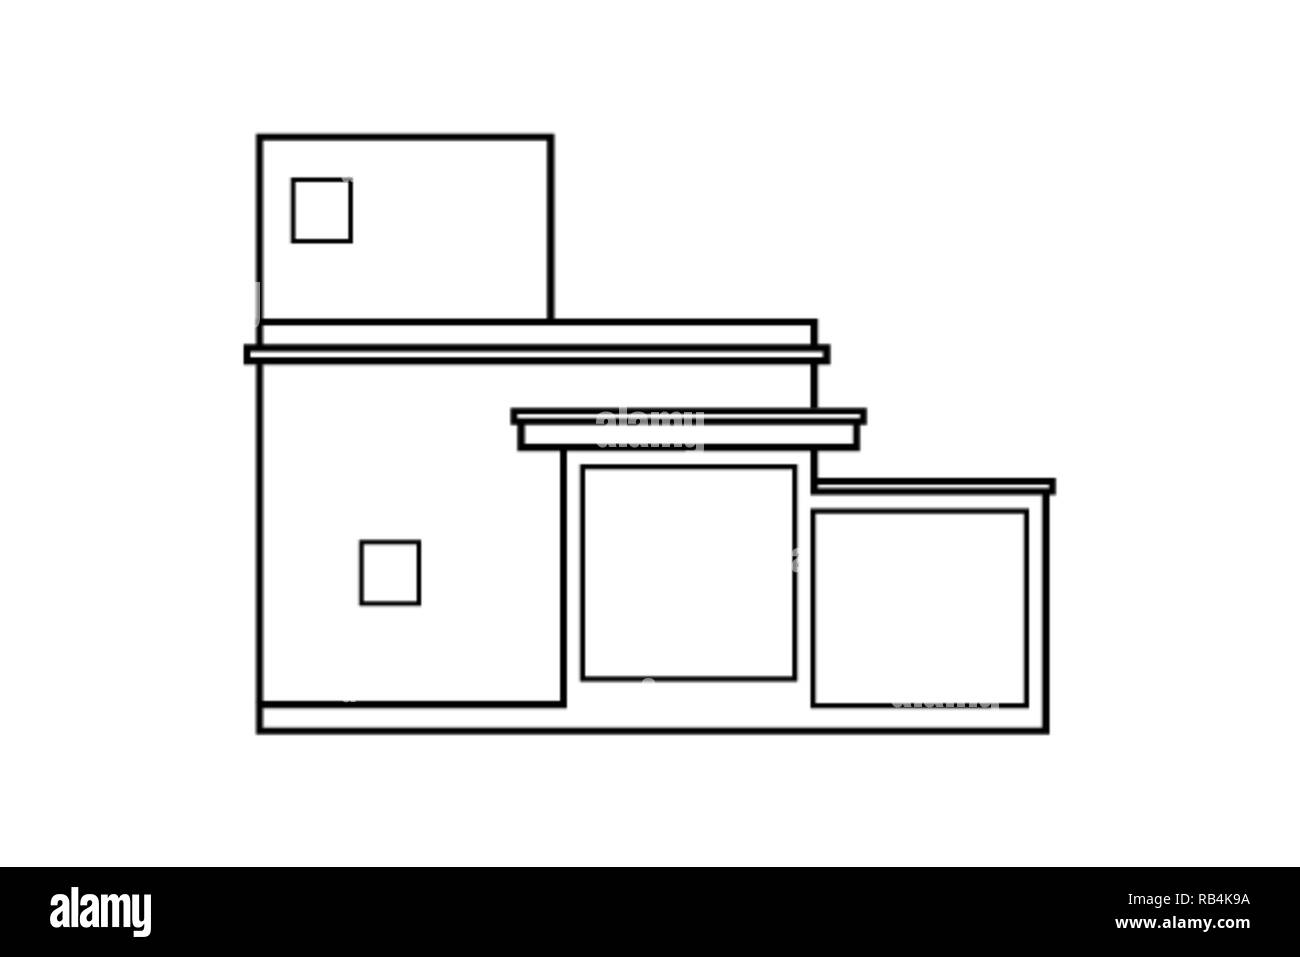 Abstract Outline Drawing Modern House Or Building Square